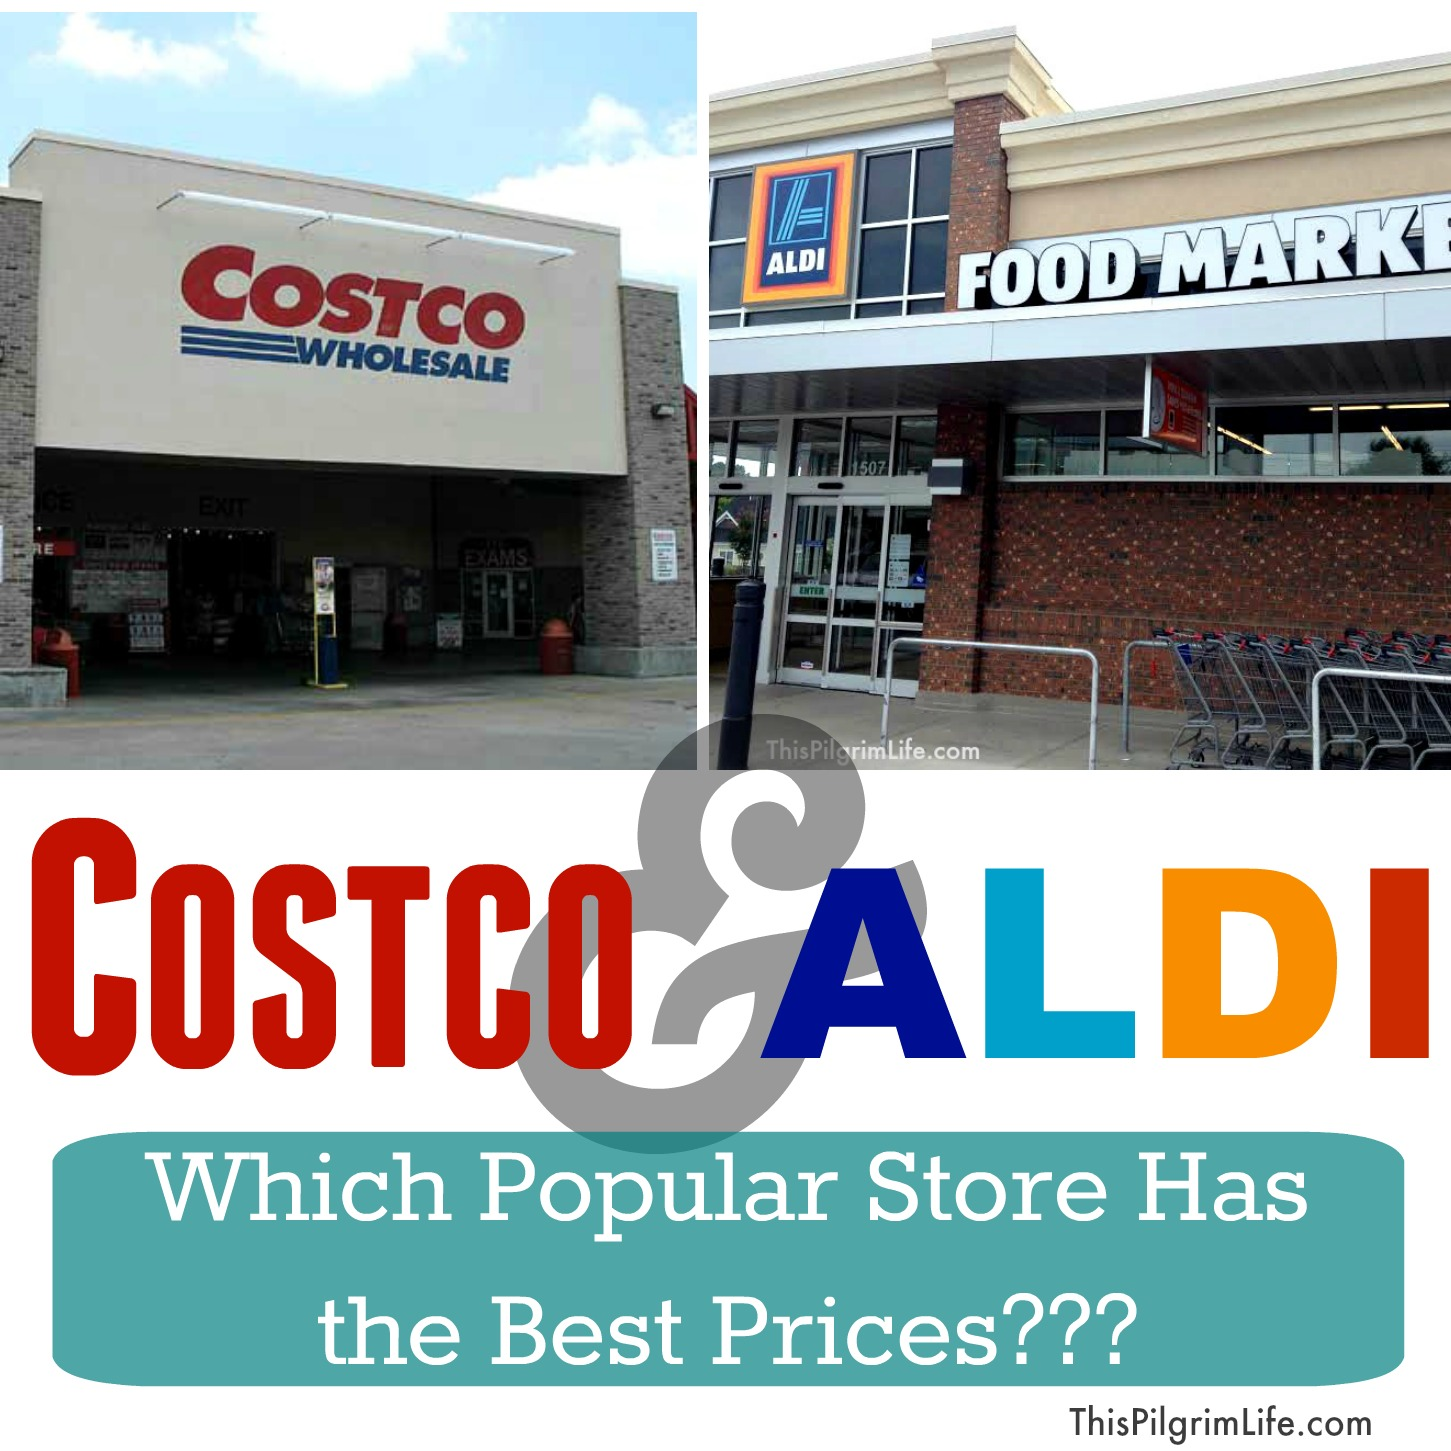 Shop Costco Online Store: Costco And Aldi...Which Popular Store Has The Best Prices